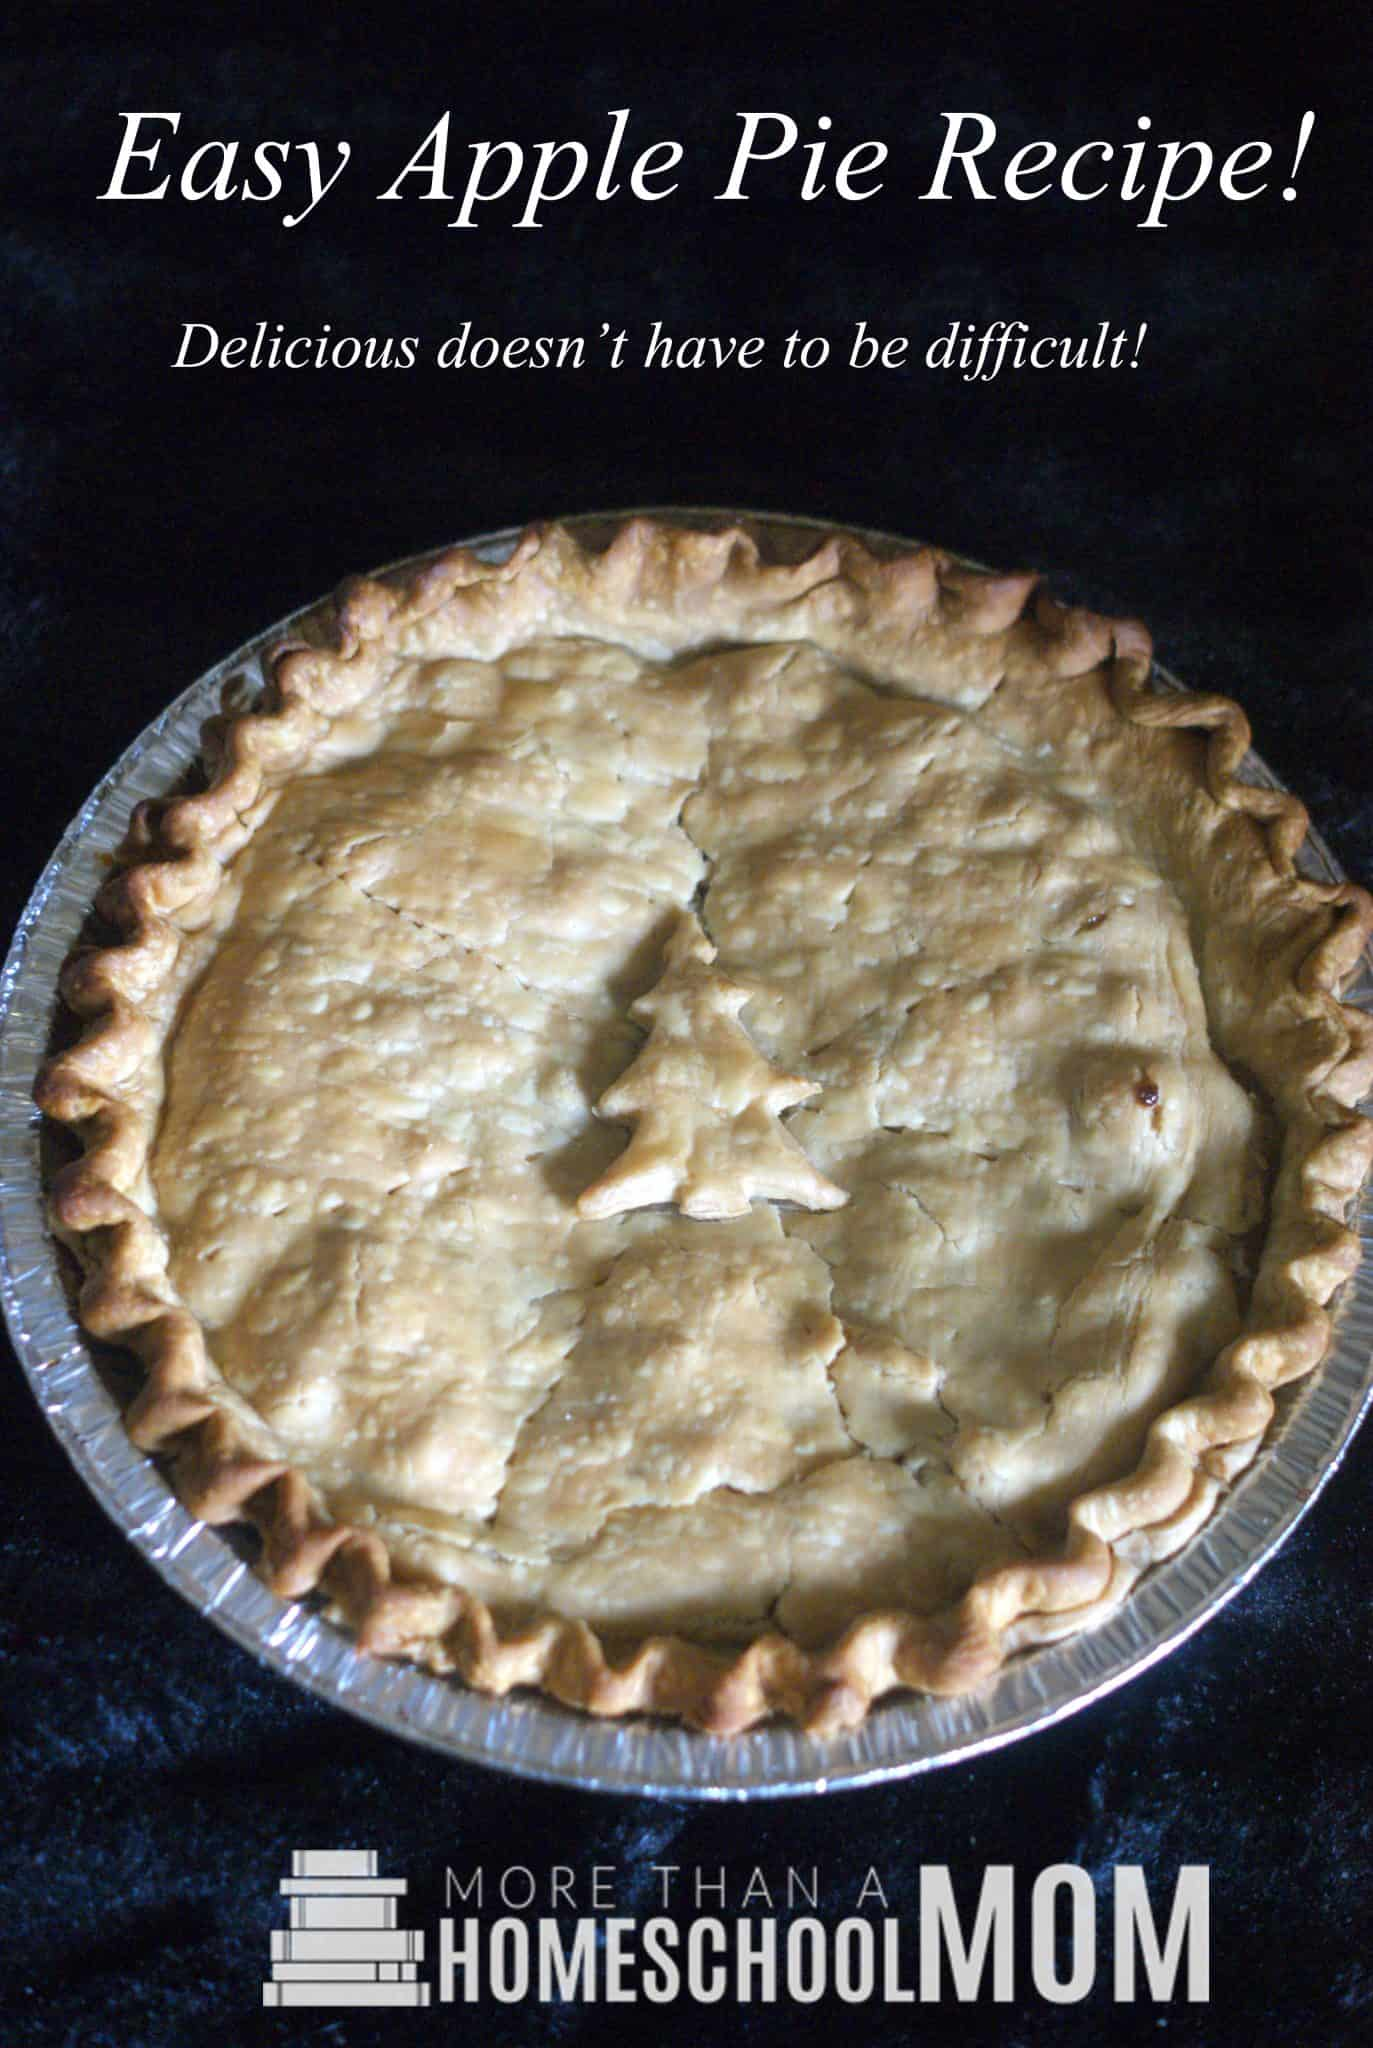 Easy Apple Pie Recipe - Easy home made apple pie recipe with a Doctor Who apple pie with weeping angels.